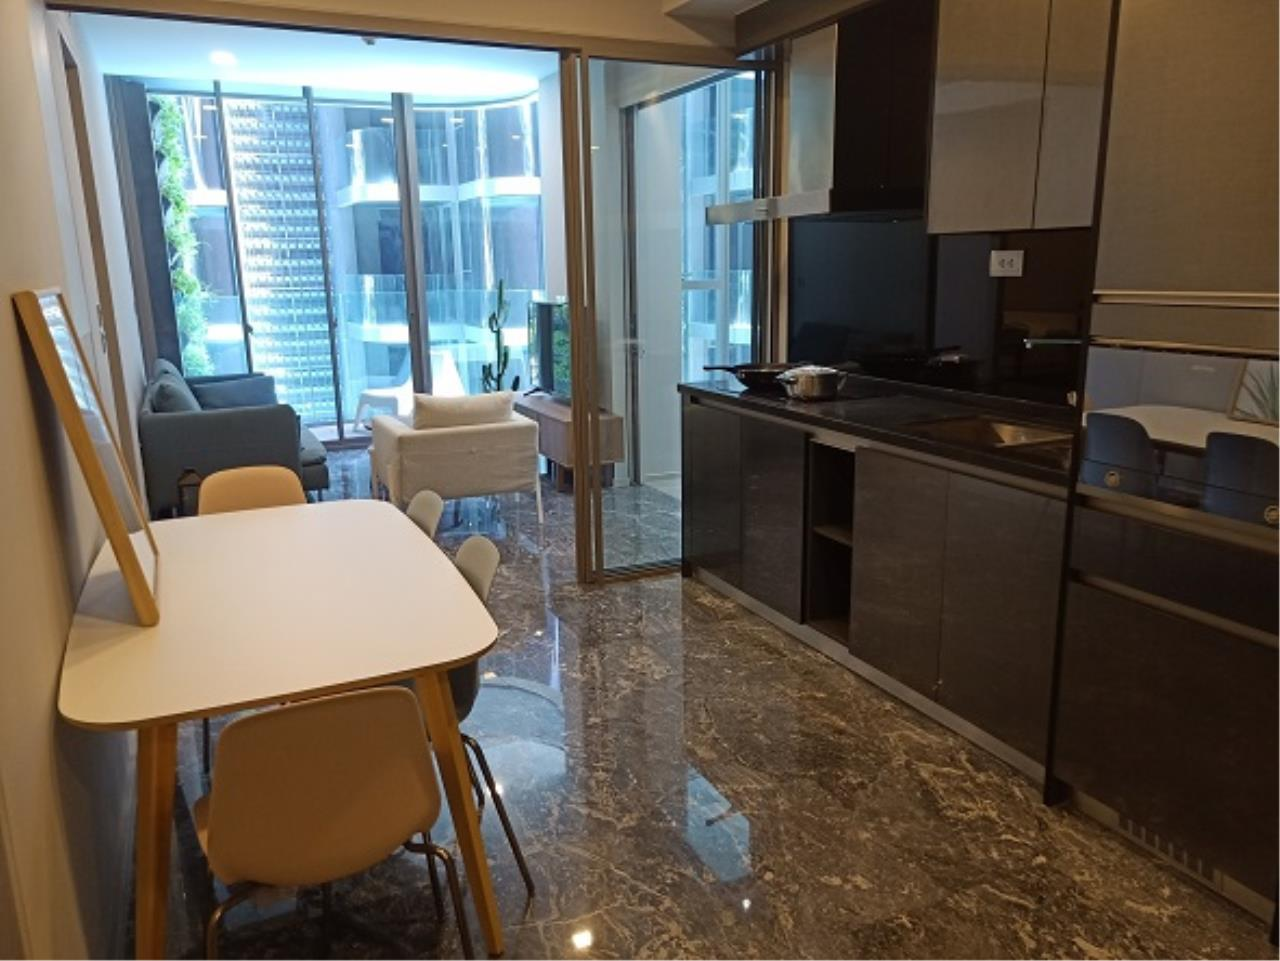 RE/MAX All Star Realty Agency's Ashton Residence 41 High Luxury Condo for sale/rent (BTS Phrom Pong) 1